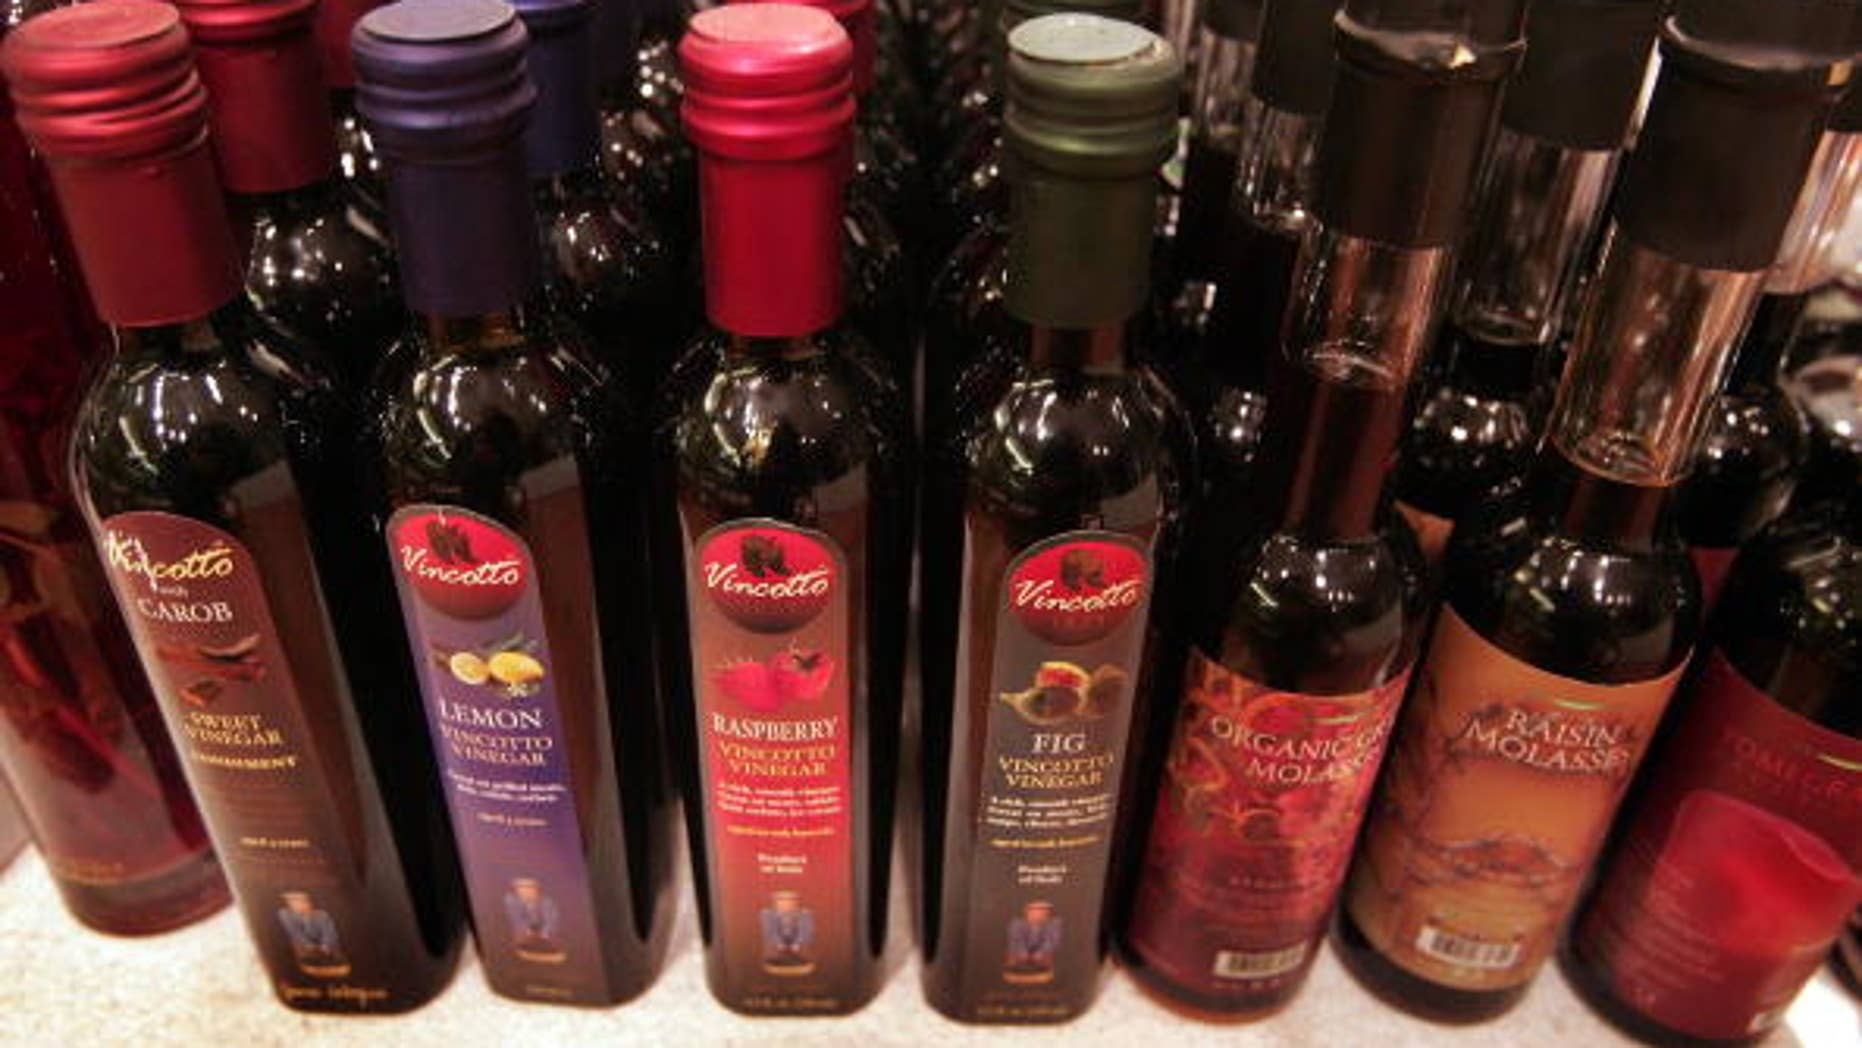 Gourmet vinegar is offered for sale in Chicago, Illinois.